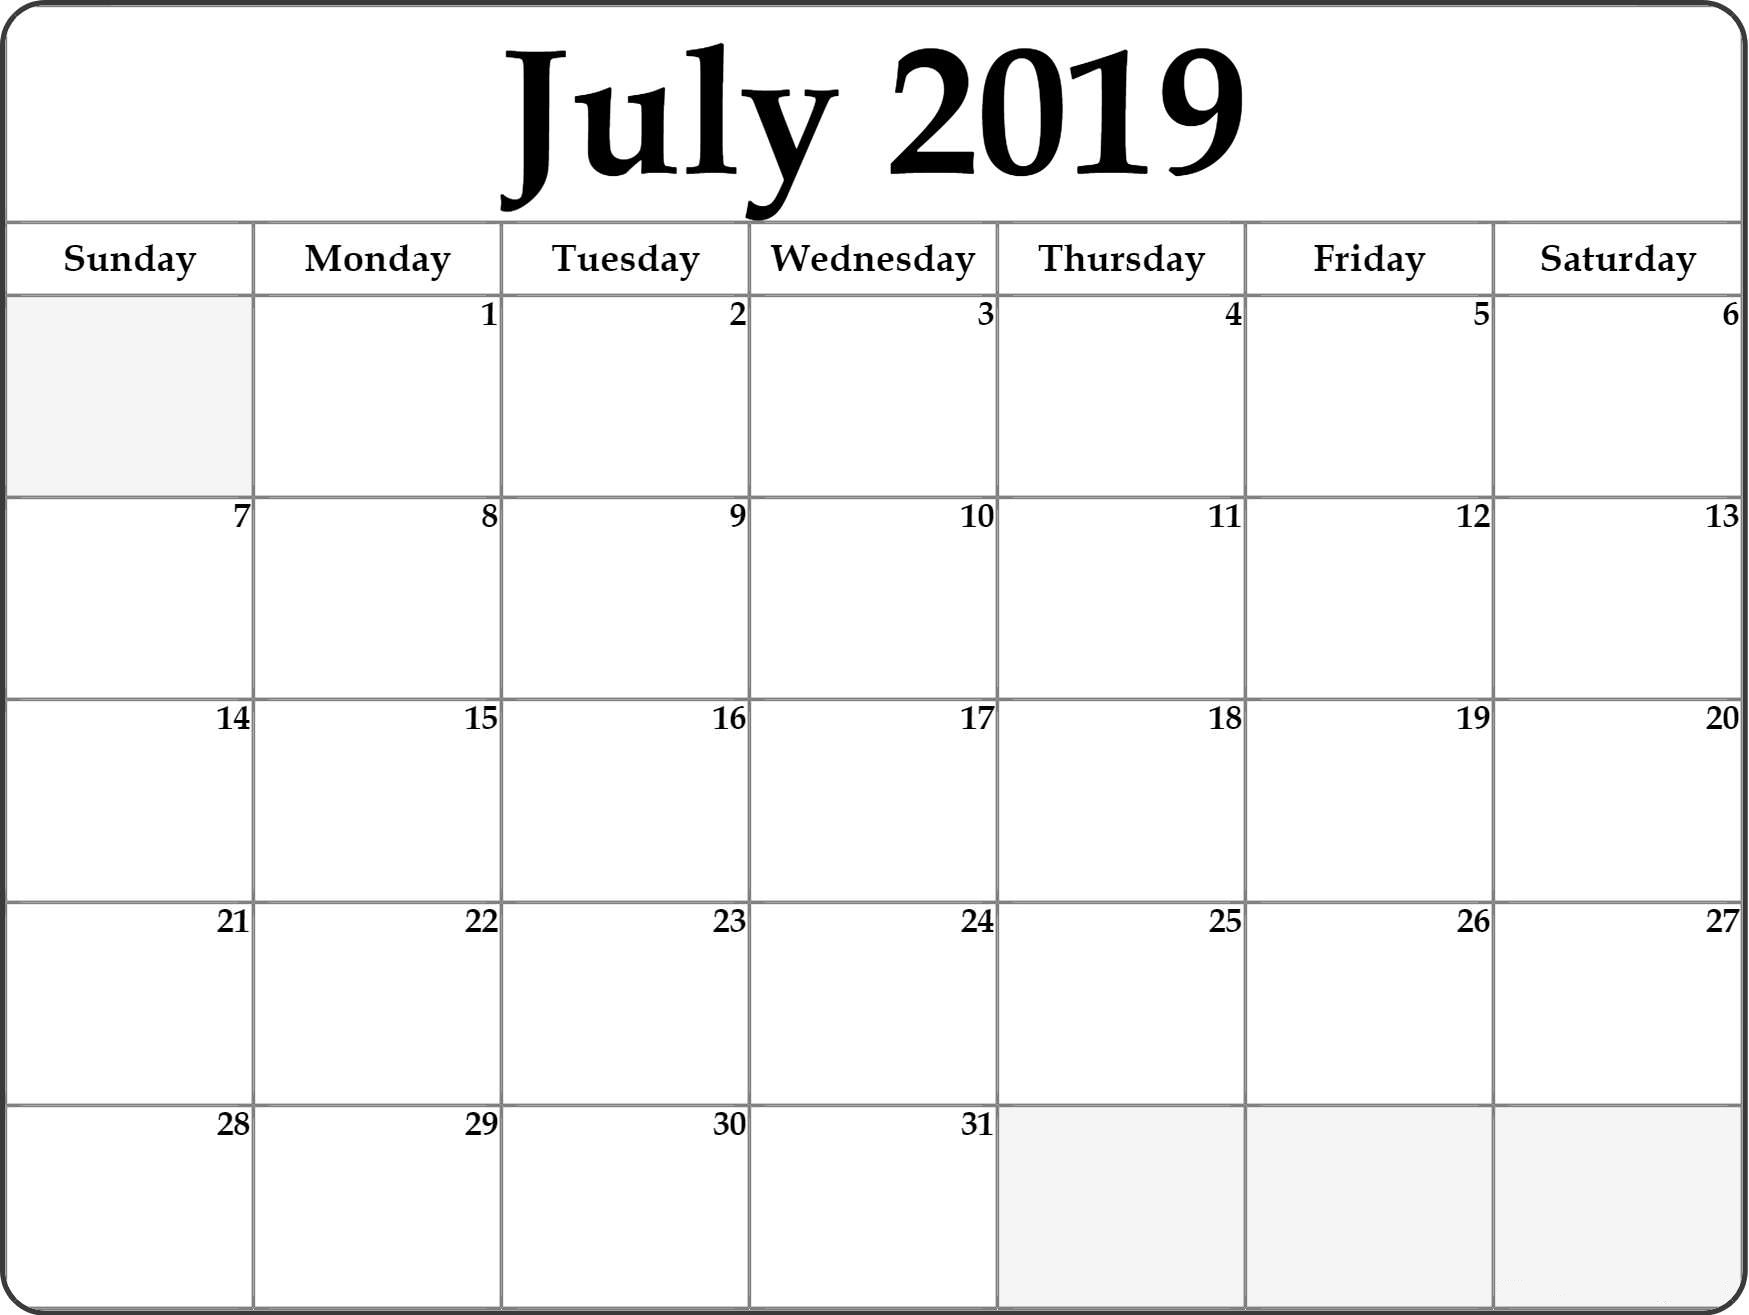 July 2019 Calendar Monthly Template